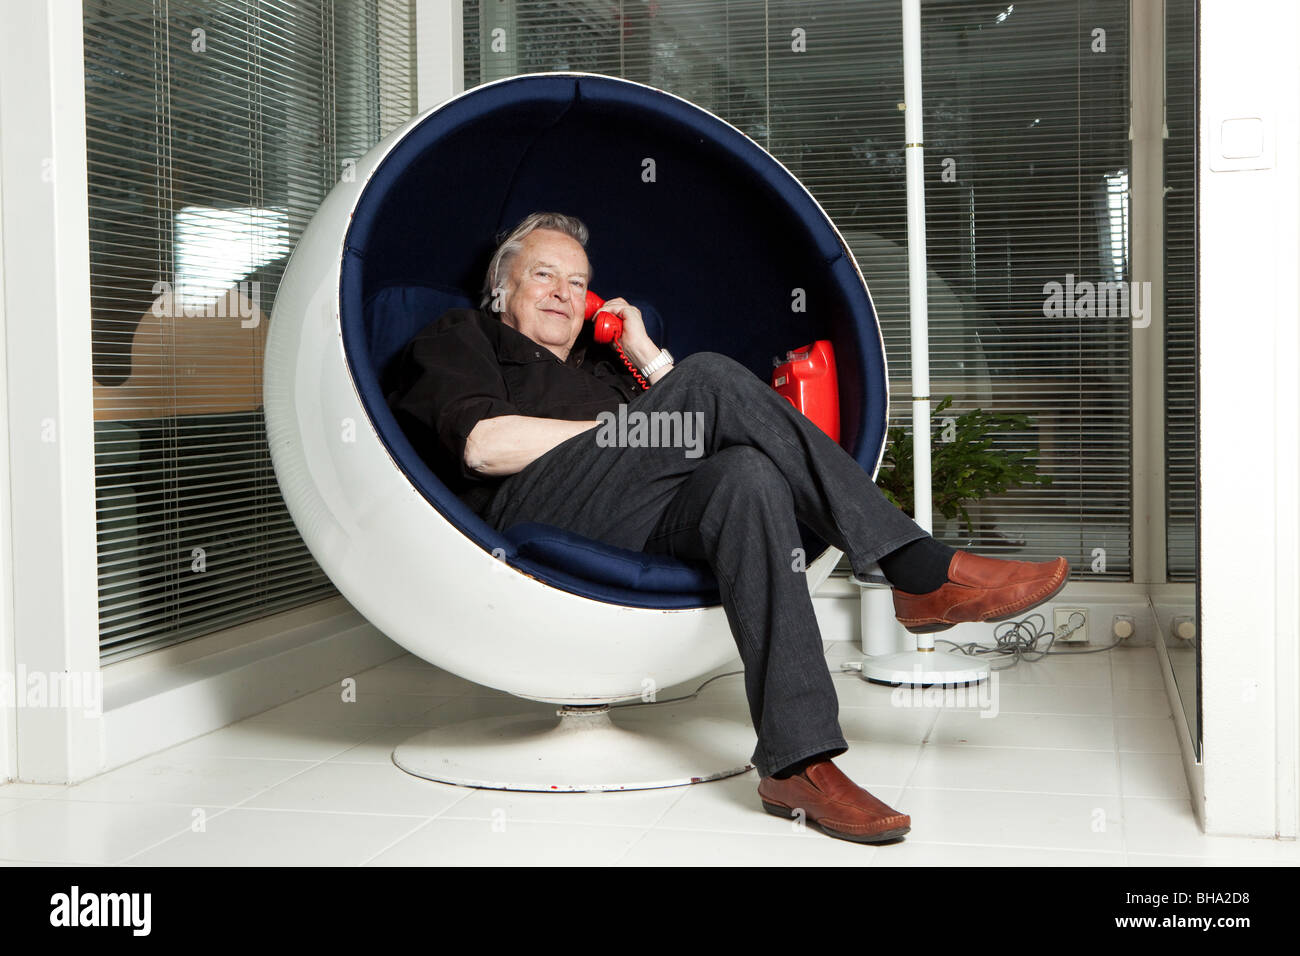 eero aarnio designer of ball chair stock photo 27880980 alamy